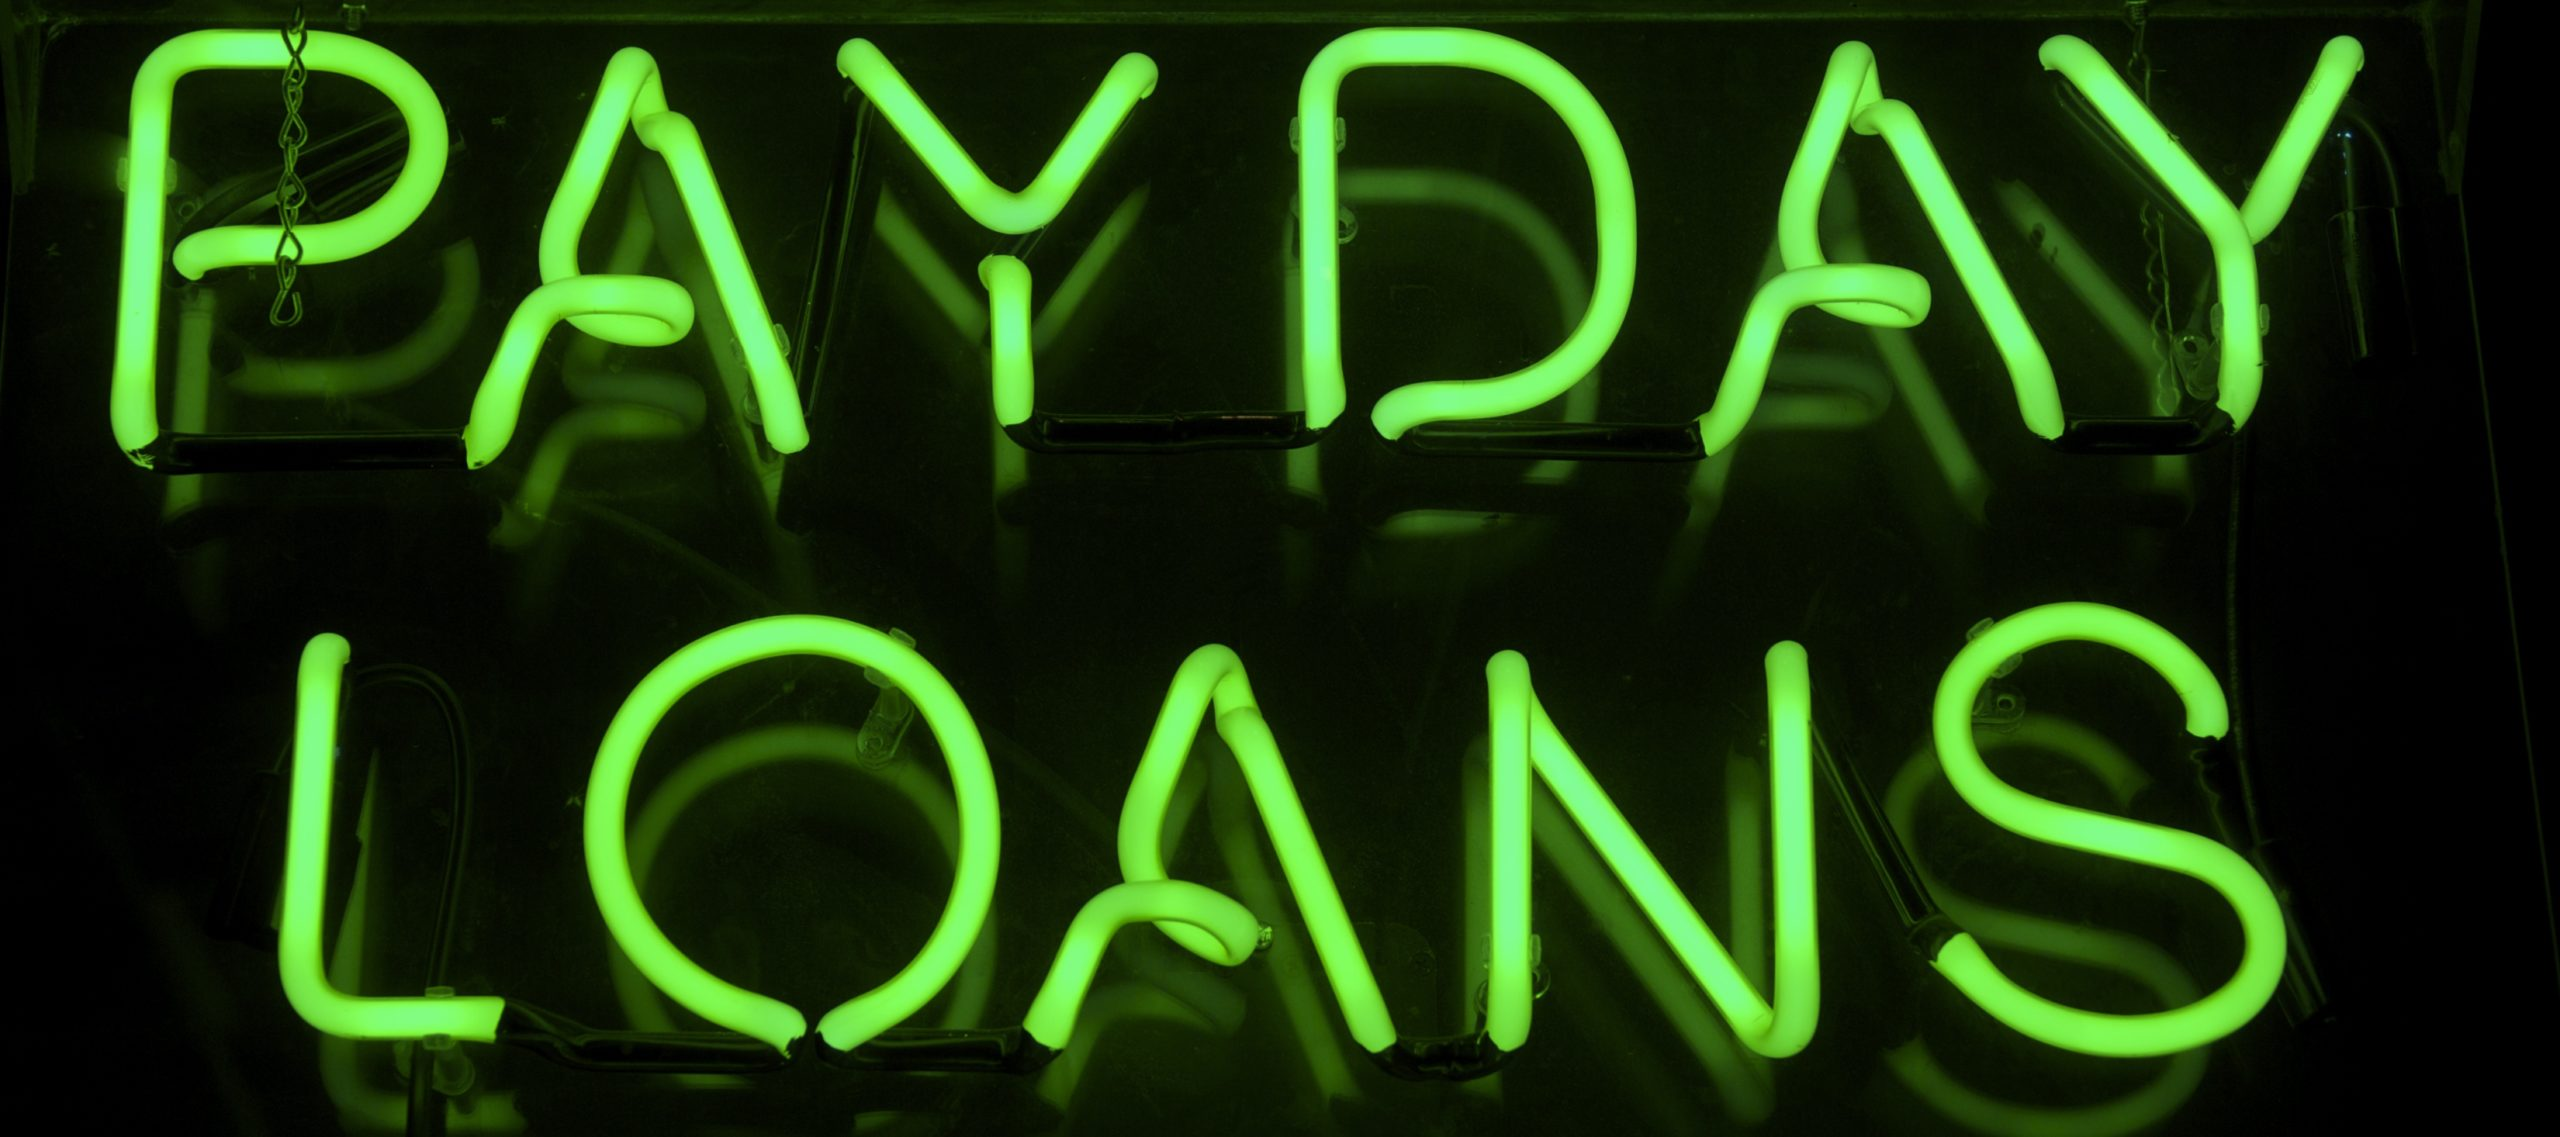 How To Spot A Payday Loan Scam